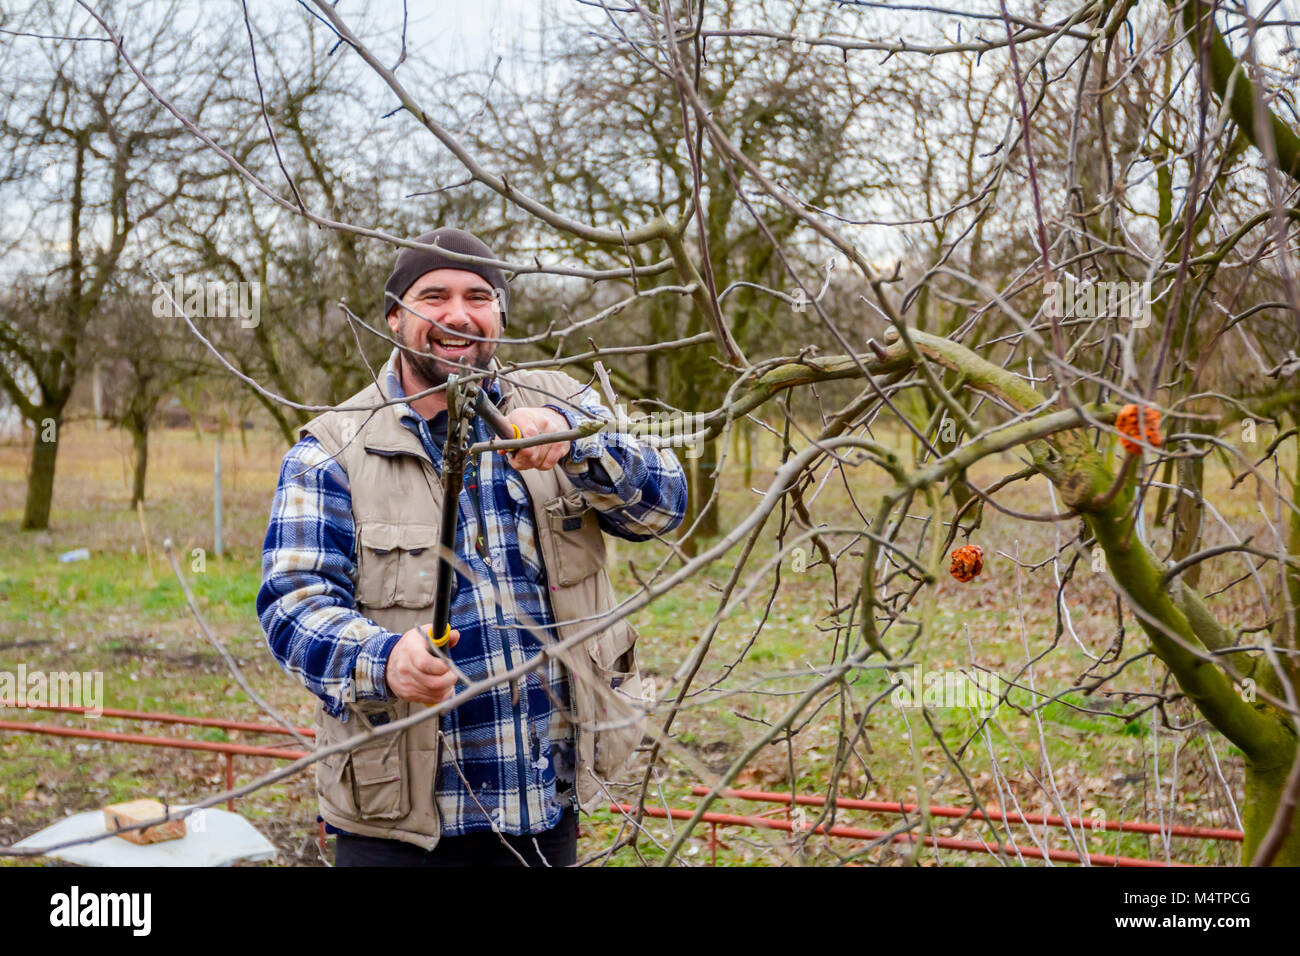 Tree Branches Cut Off Stock Photos Amp Tree Branches Cut Off